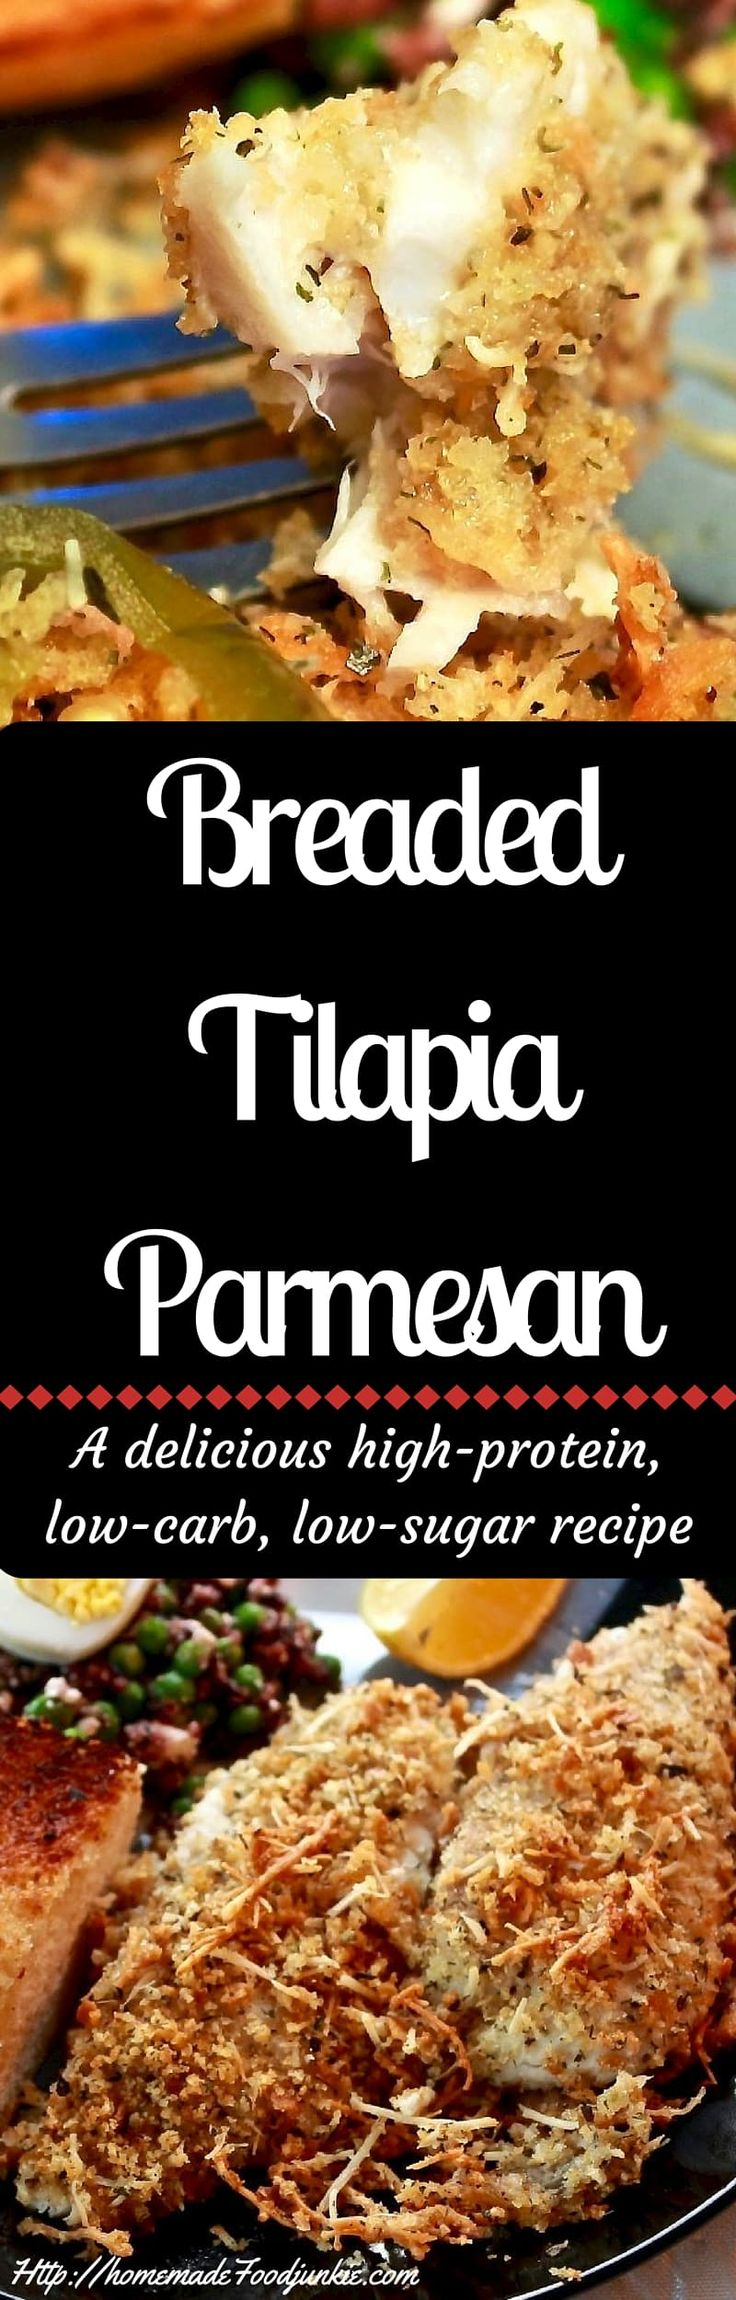 Breaded Tilapia Parmesan a delicious high-protein, low-carb, low-sugar recipe http://homemadeFoodjunkie.com